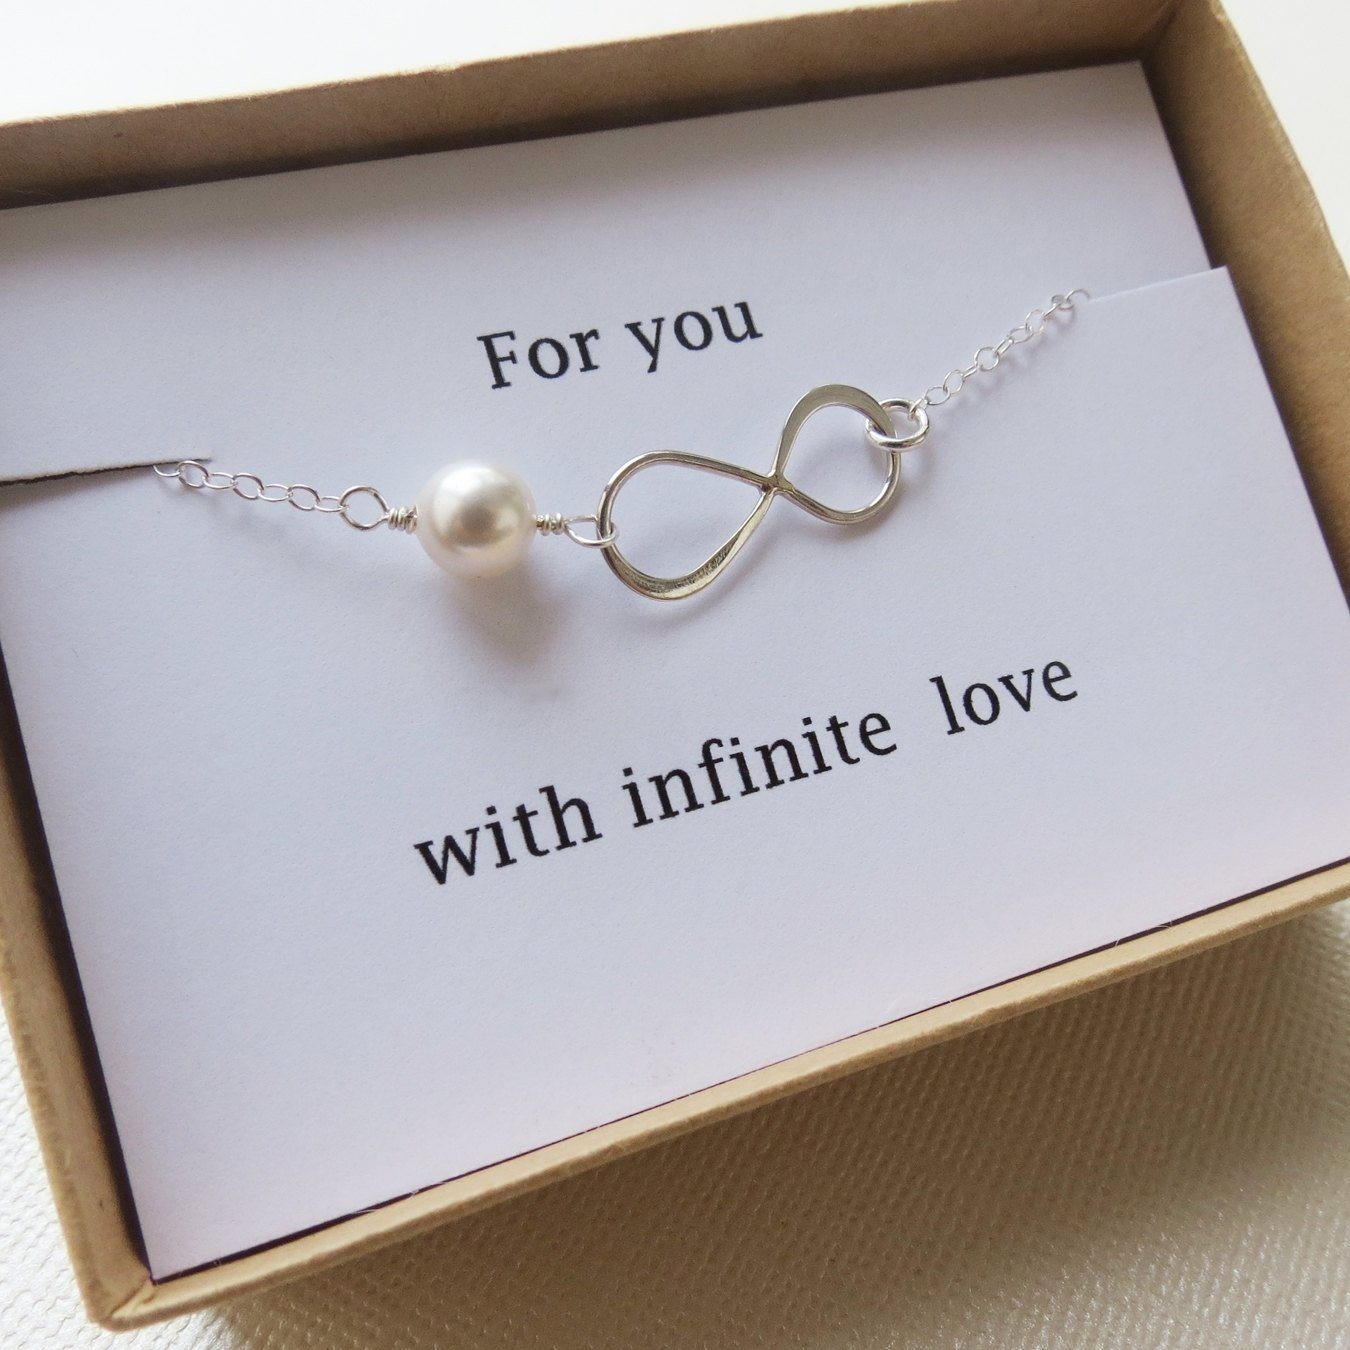 10 Fashionable Christmas Present Ideas For Girlfriend infinity bracelet love holiday gift infinity jewelry card 2 2020